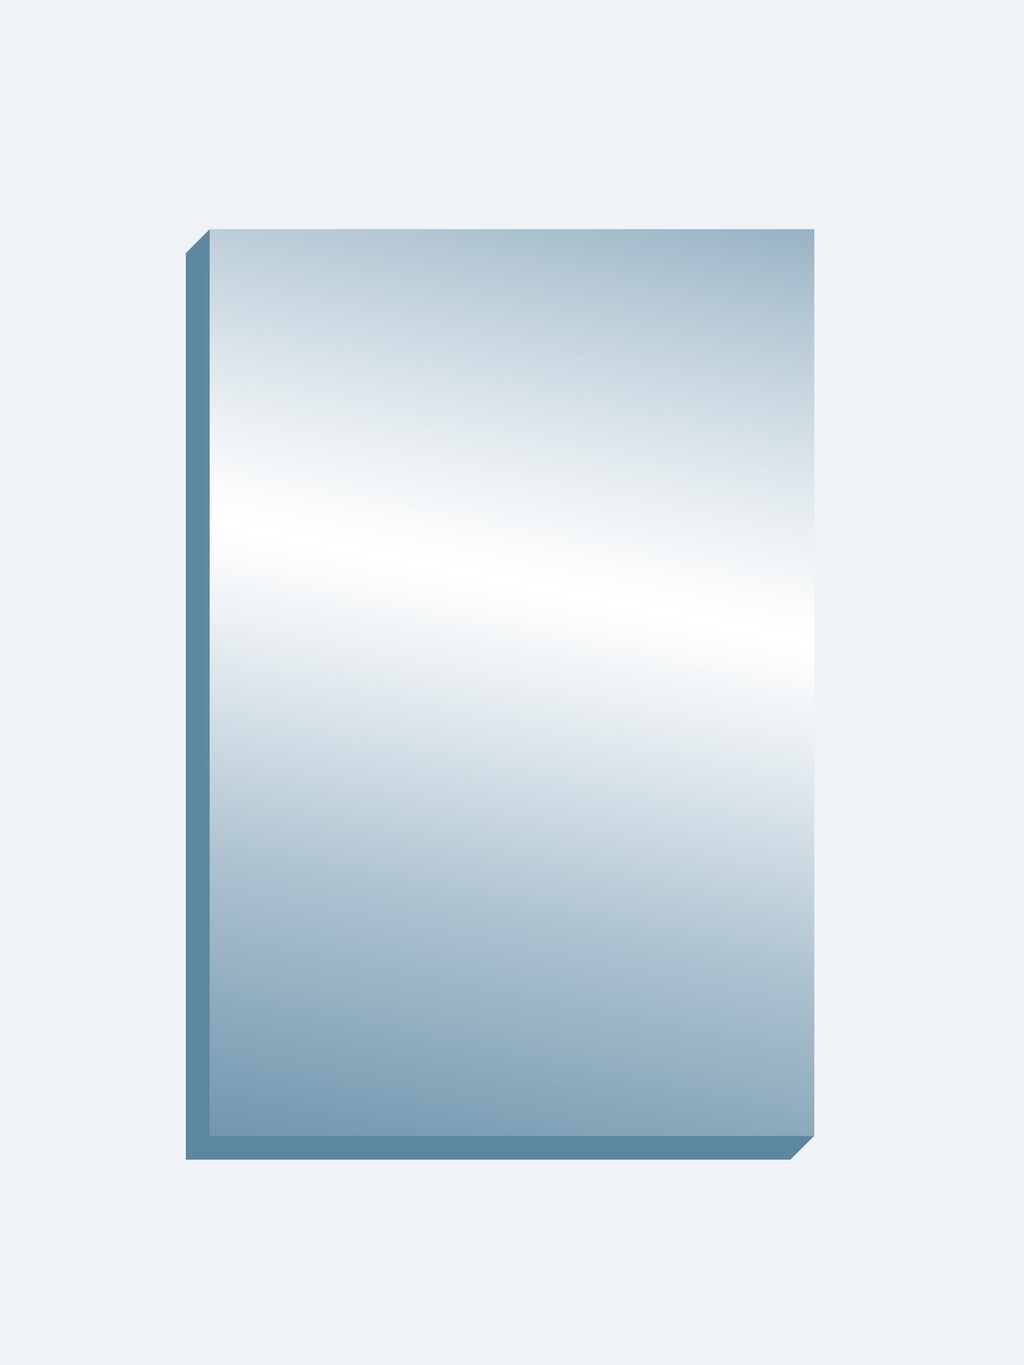 "Optical Grade Mirror 72"" x 108"" x 1-7/16"" thick"